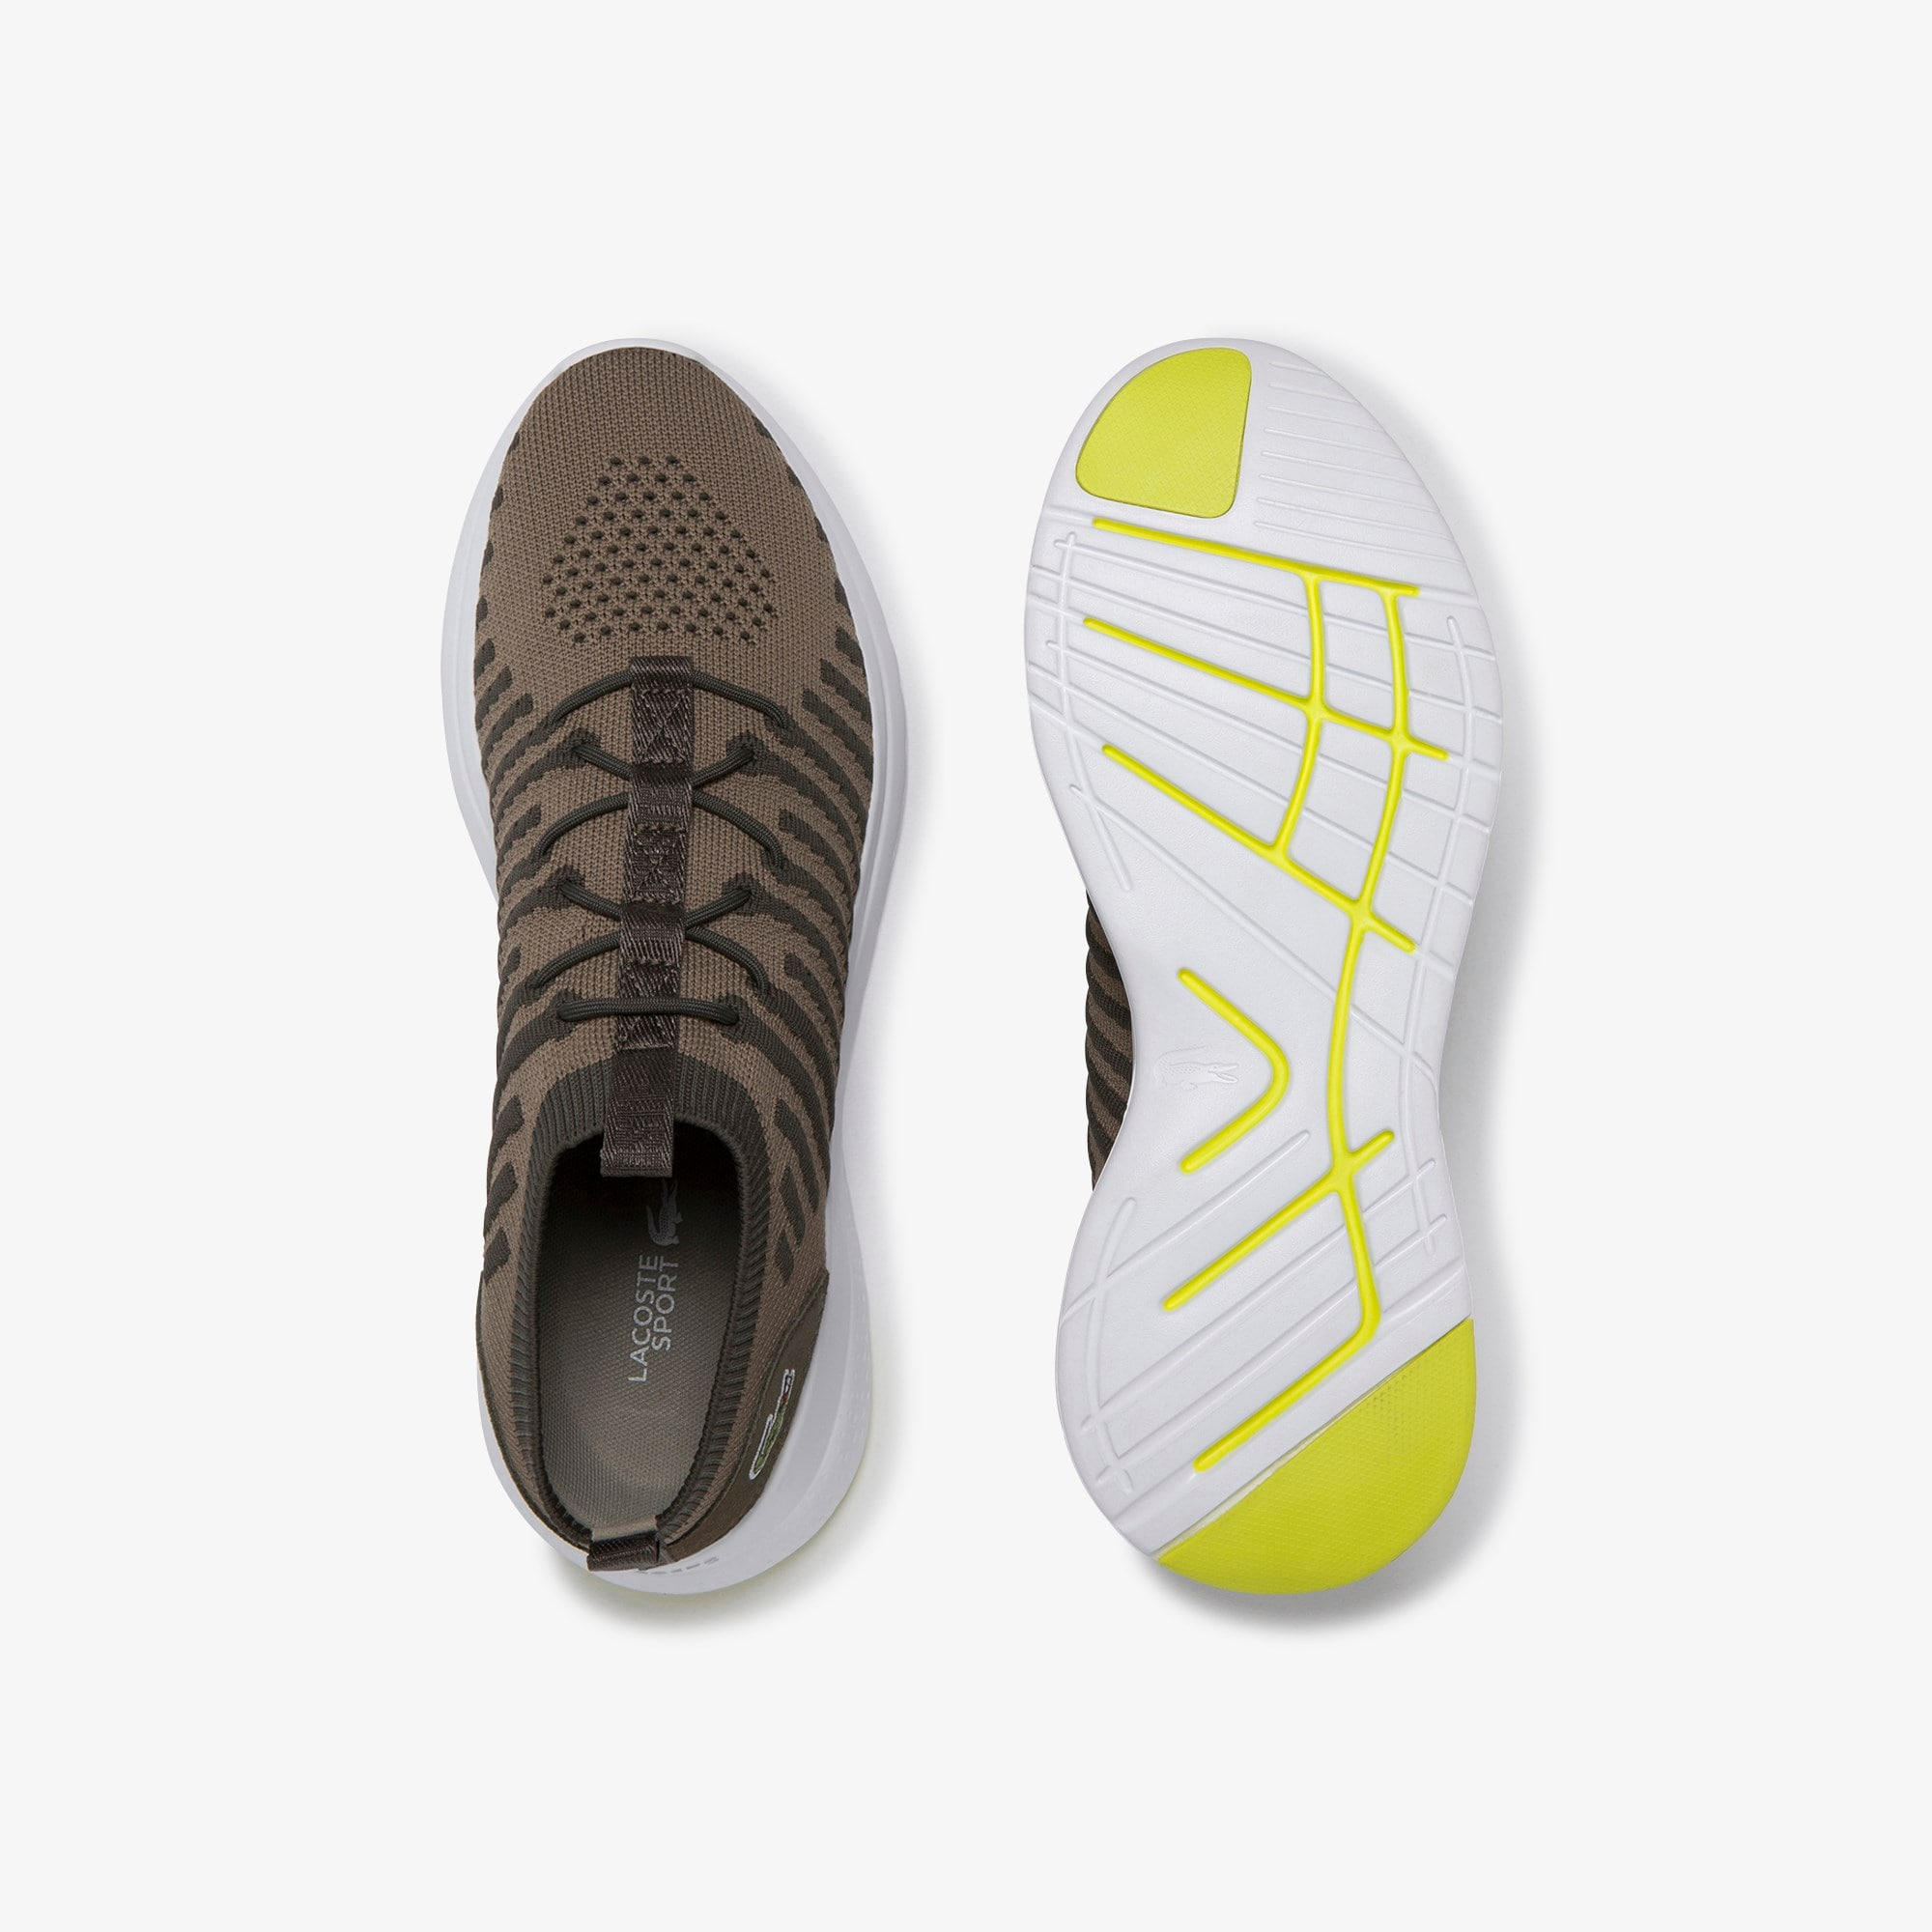 Men's LT Fit-Flex Colour-pop Textile and Suede Sneakers